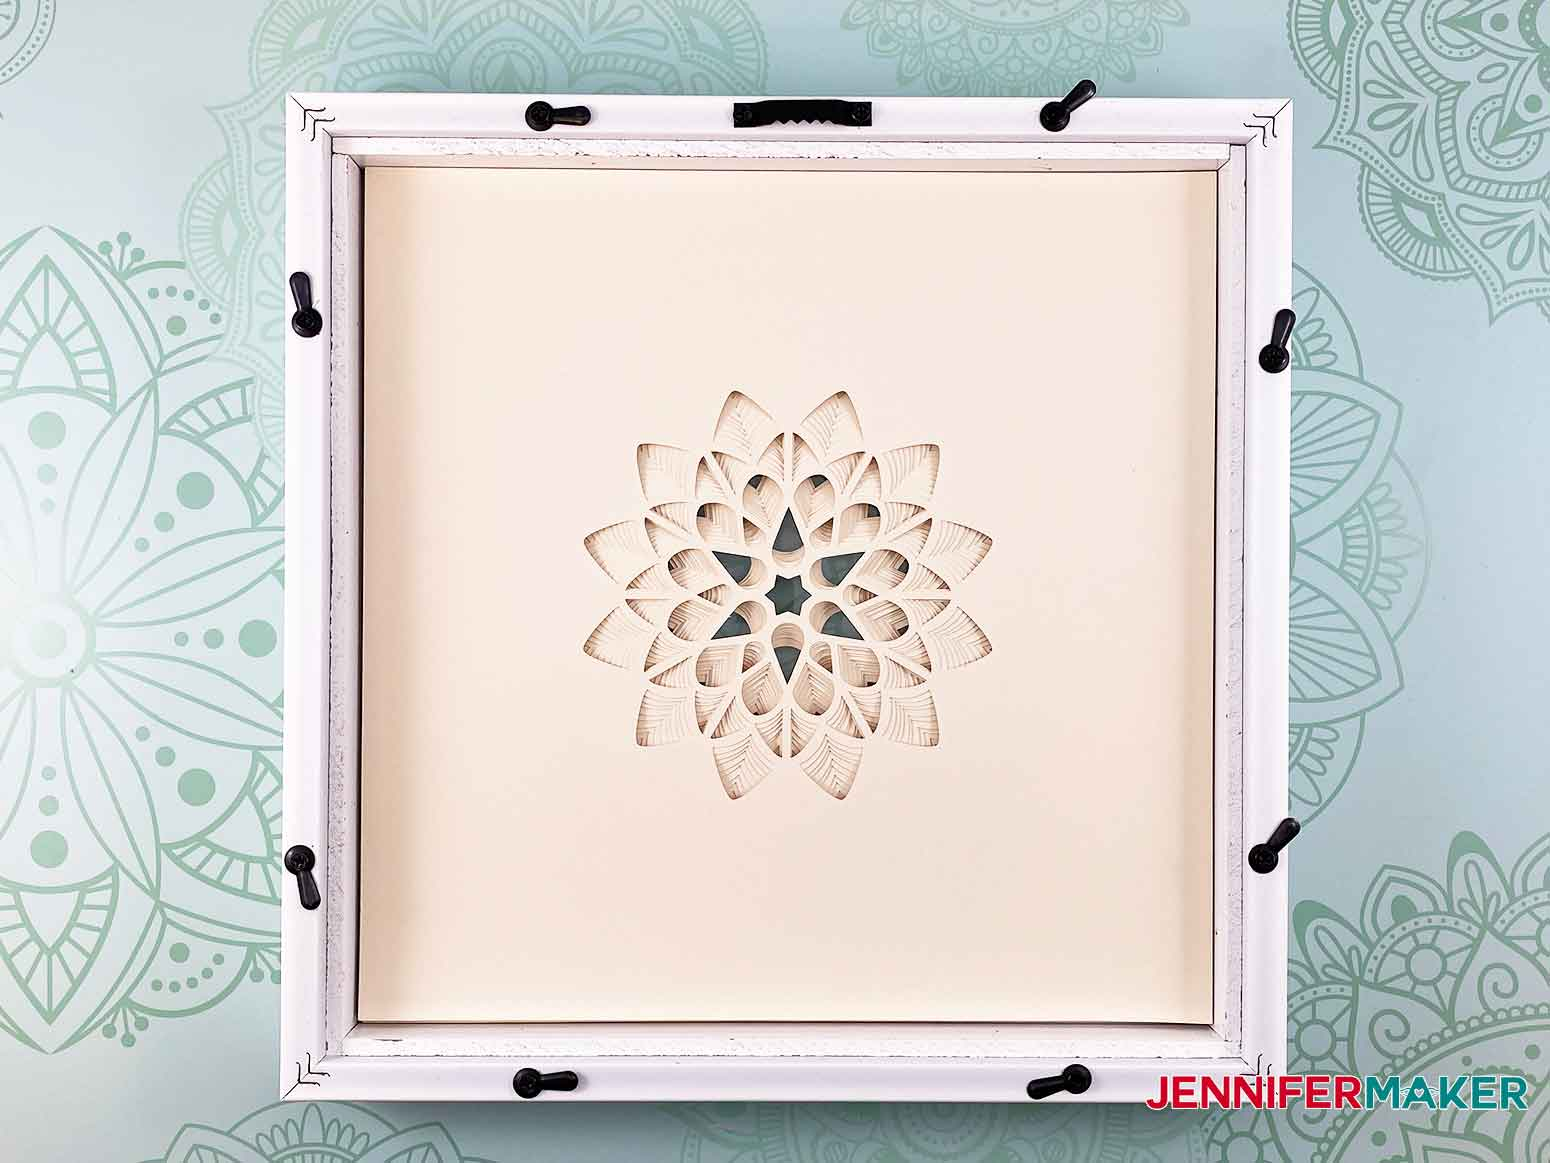 Insert your cut layers of cardstock into the frame for the 3D layered paper cut art flower